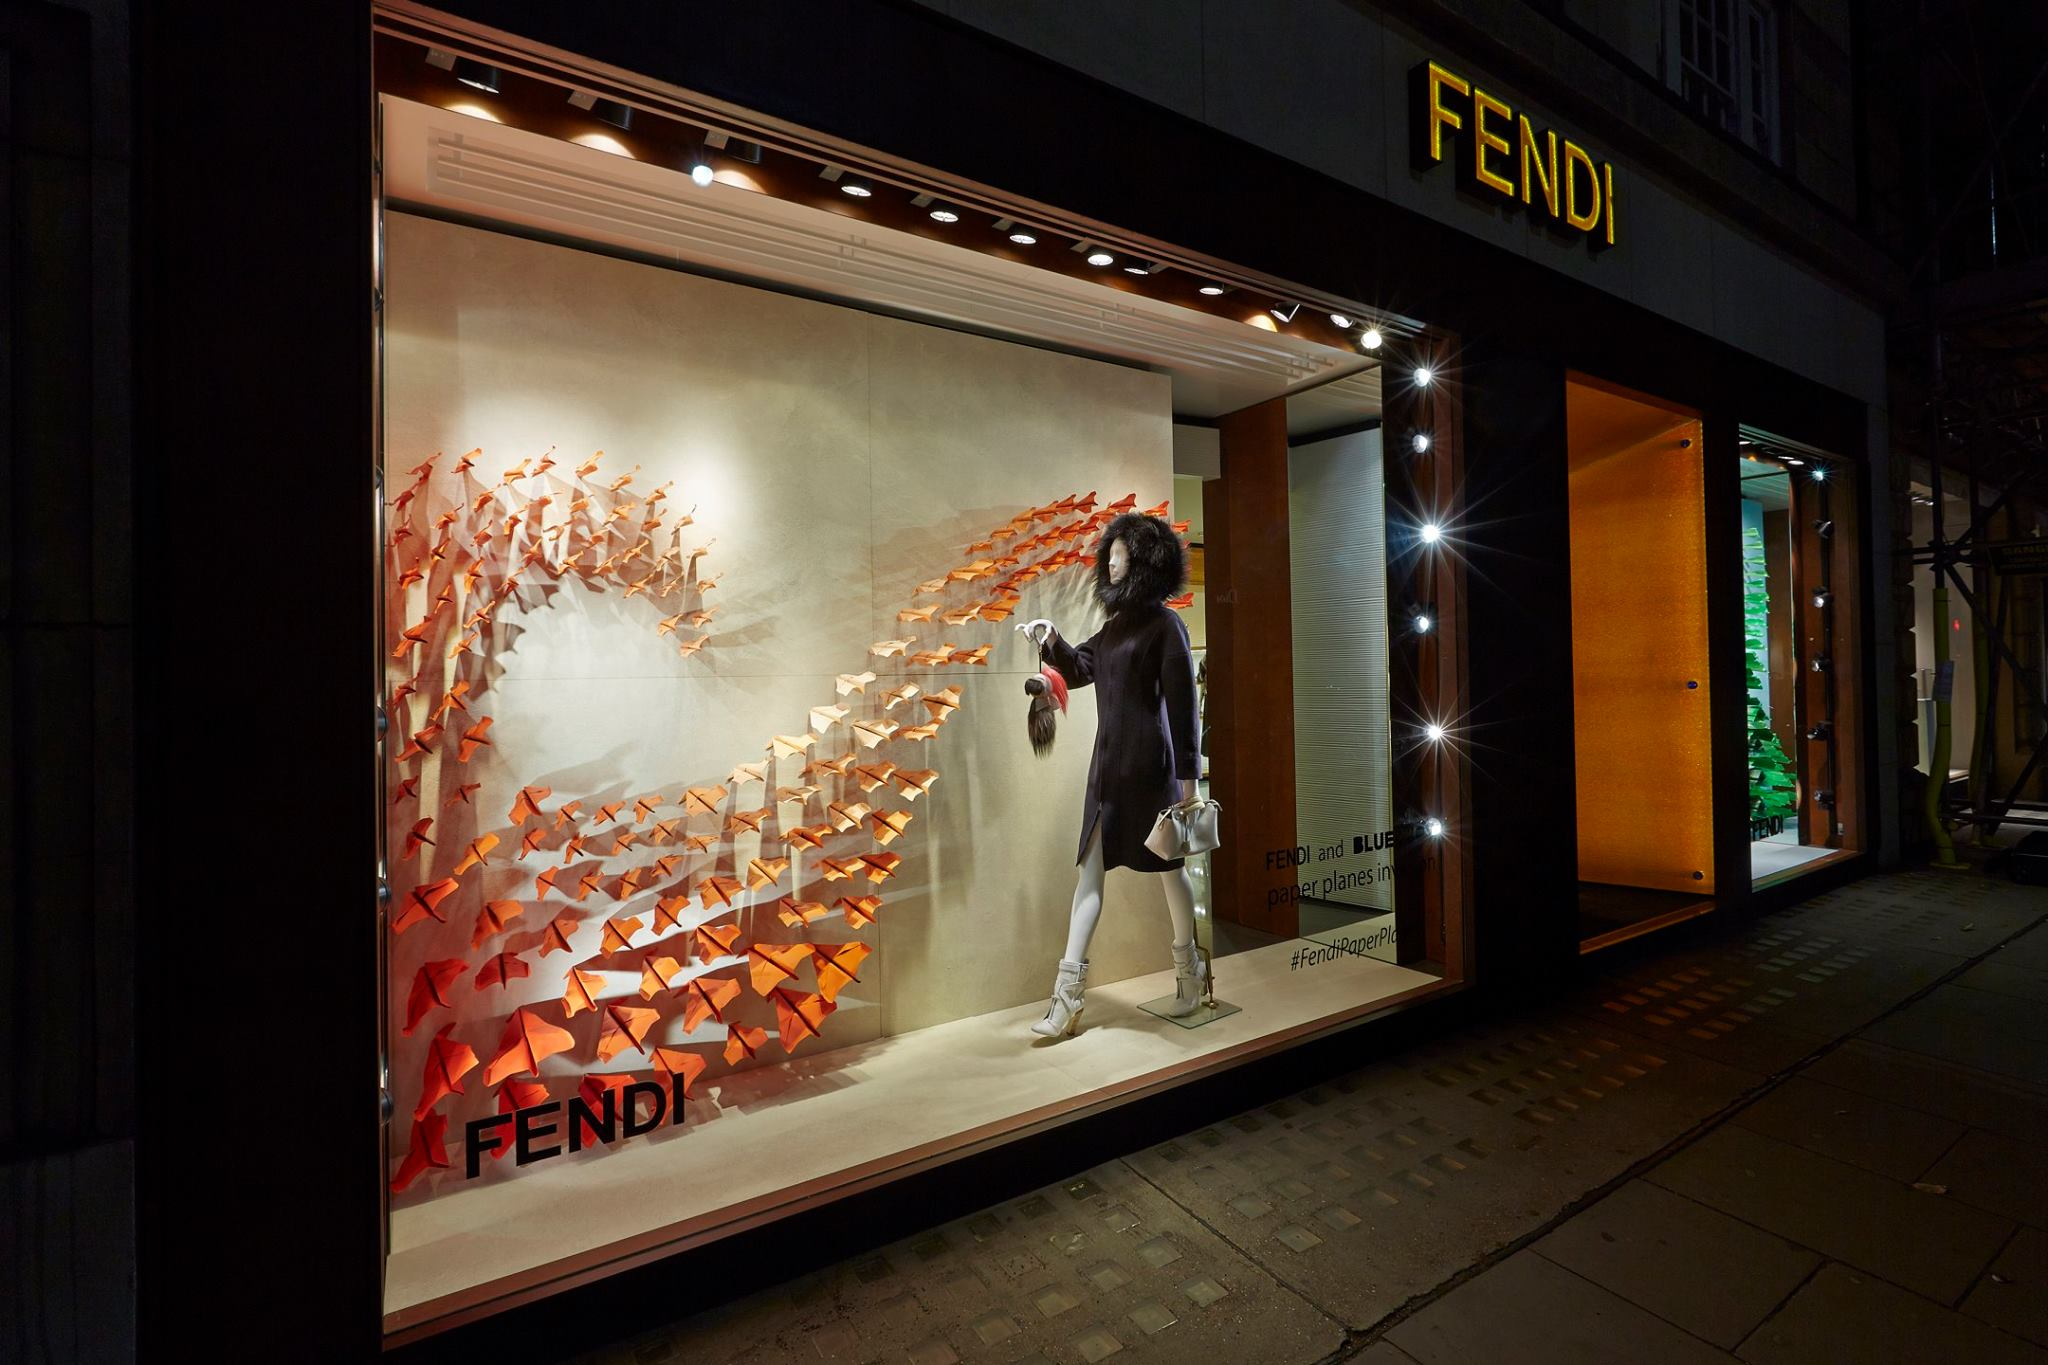 Colorful Paper Planes Invade Fendi Window Displays Worldwide